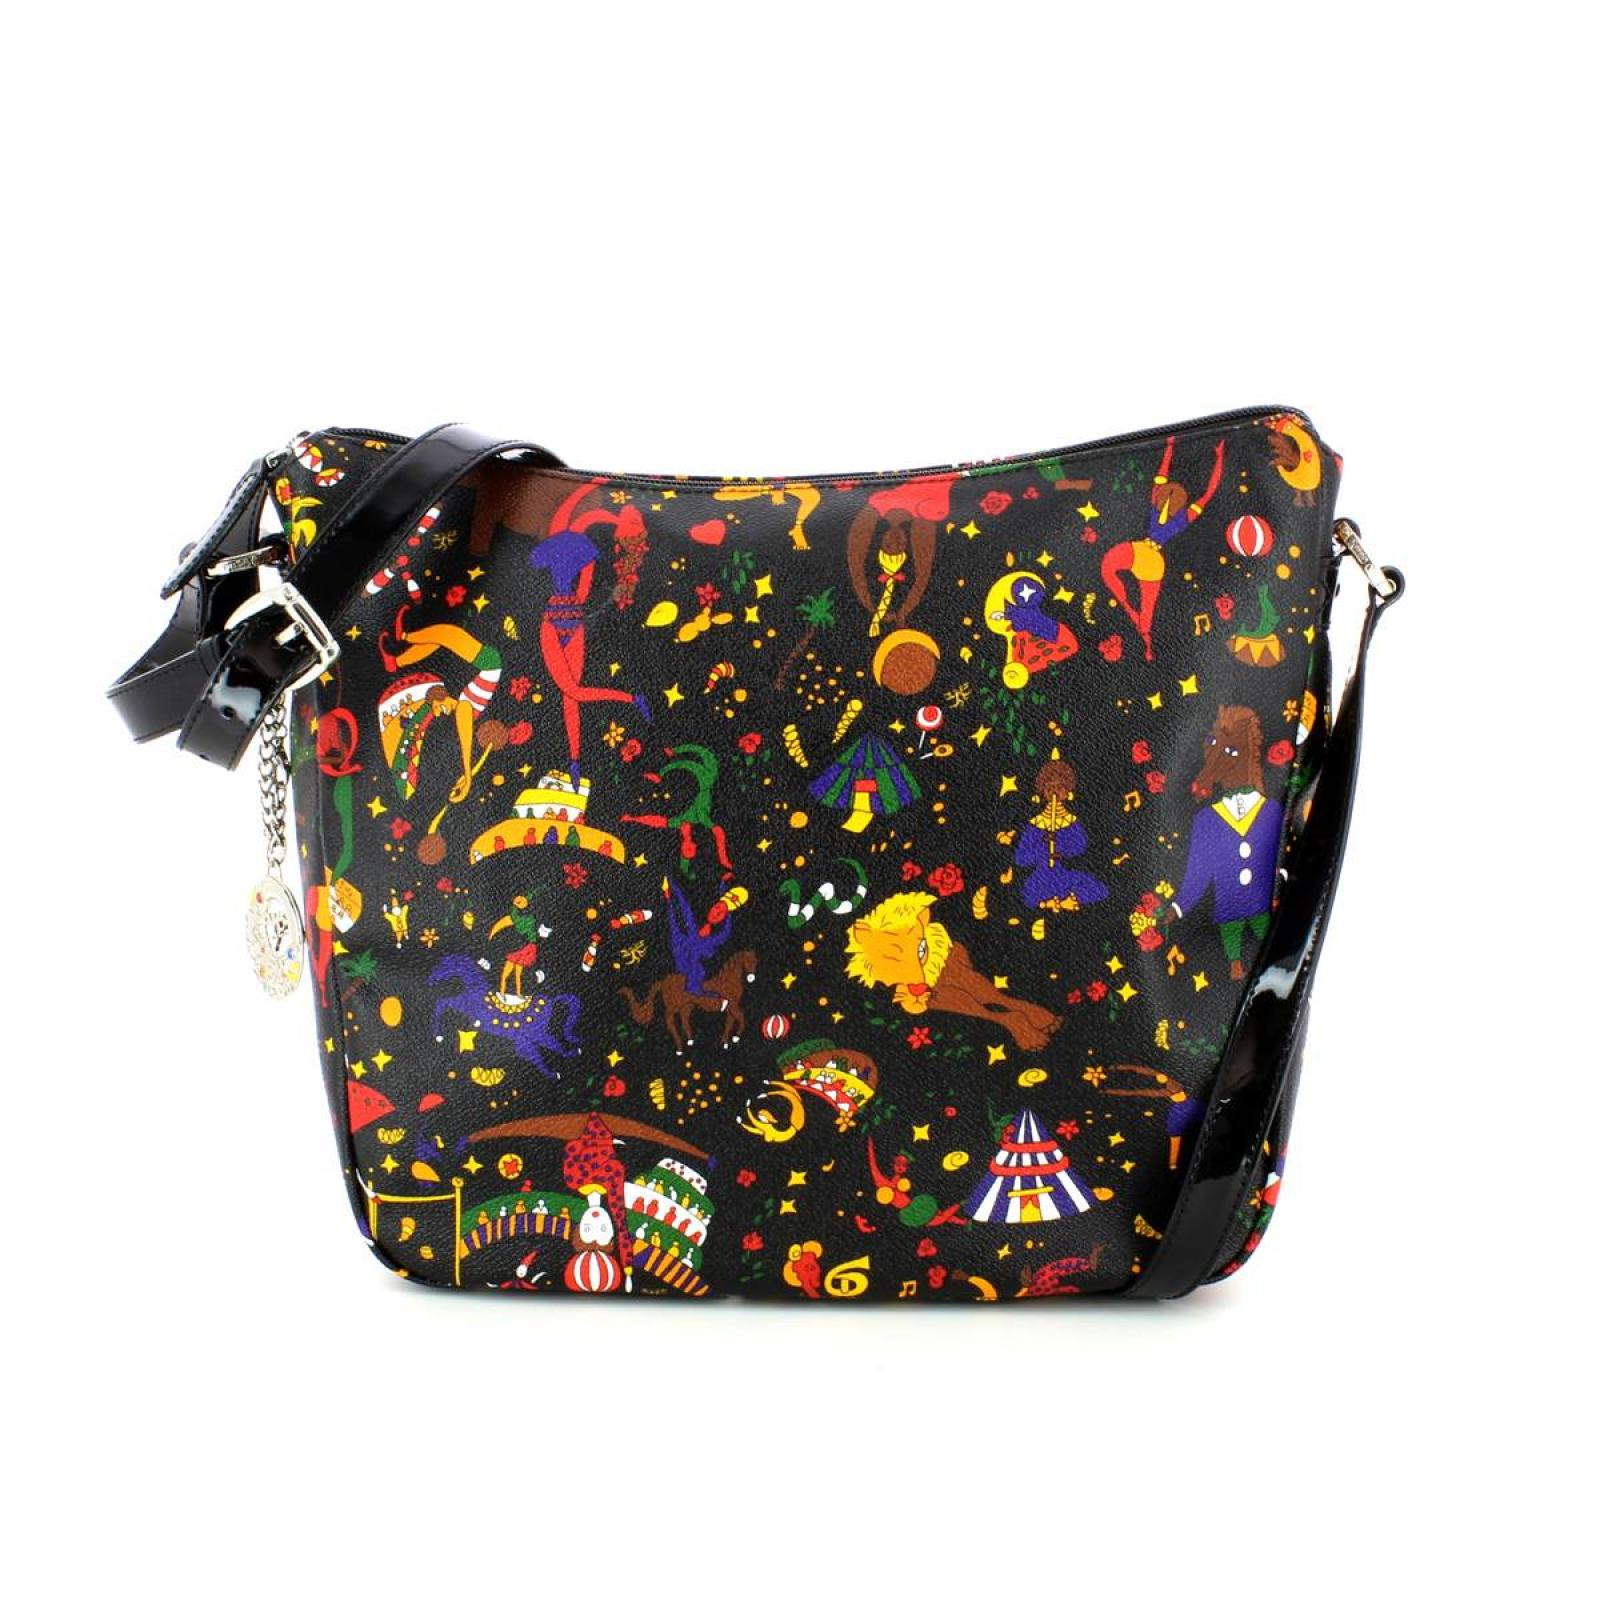 MESSENGER MAGIC CIRCUS SOFT 21B854030